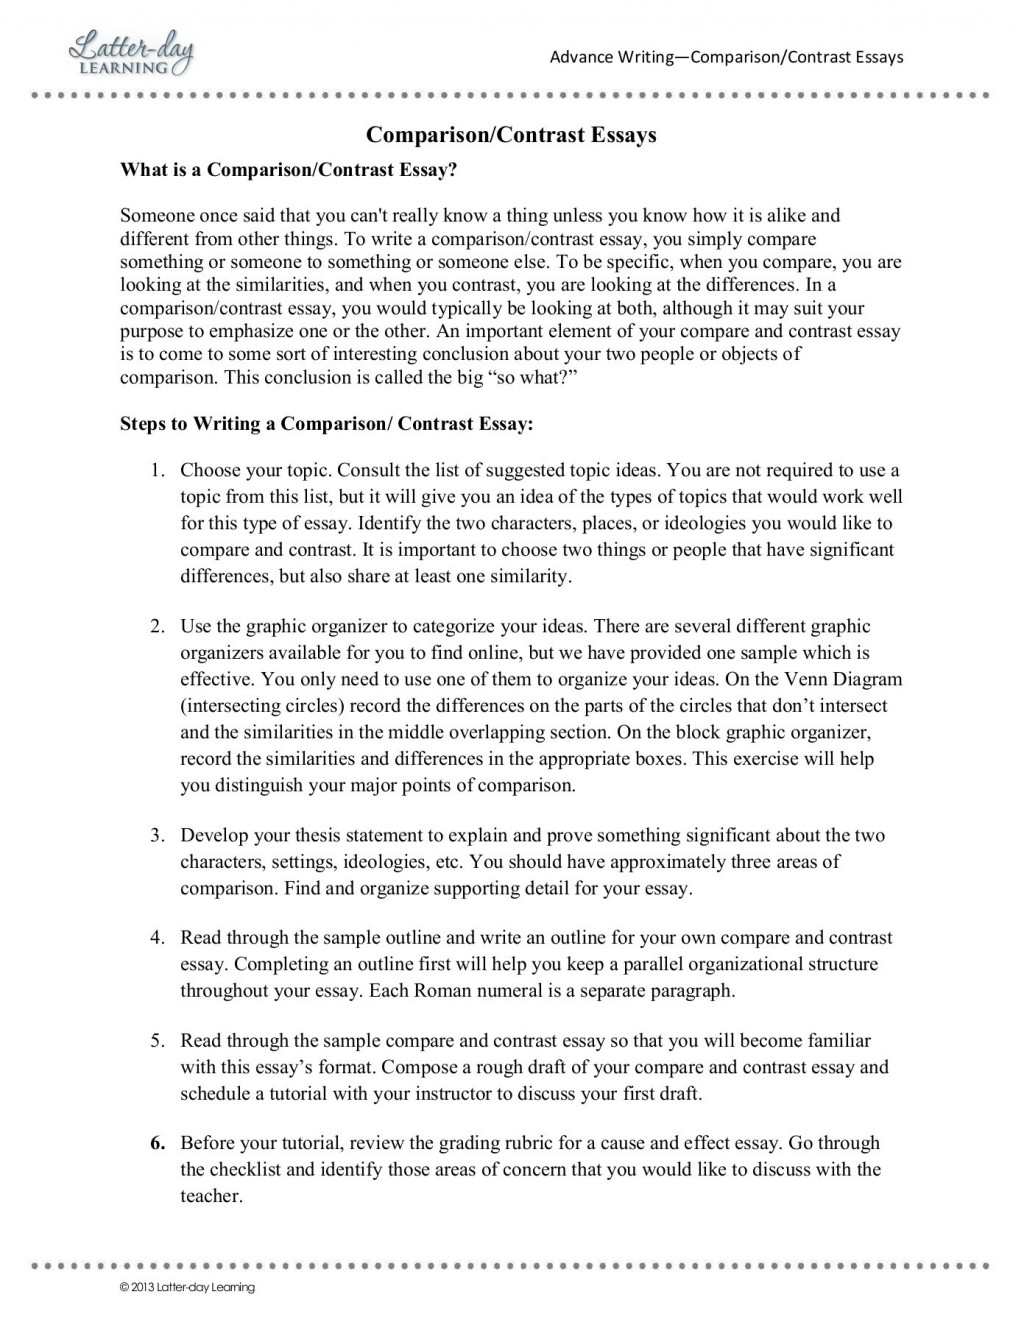 016 Compare And Contrast Essays Essay Awful Free Examples For College Topics Middle School Large